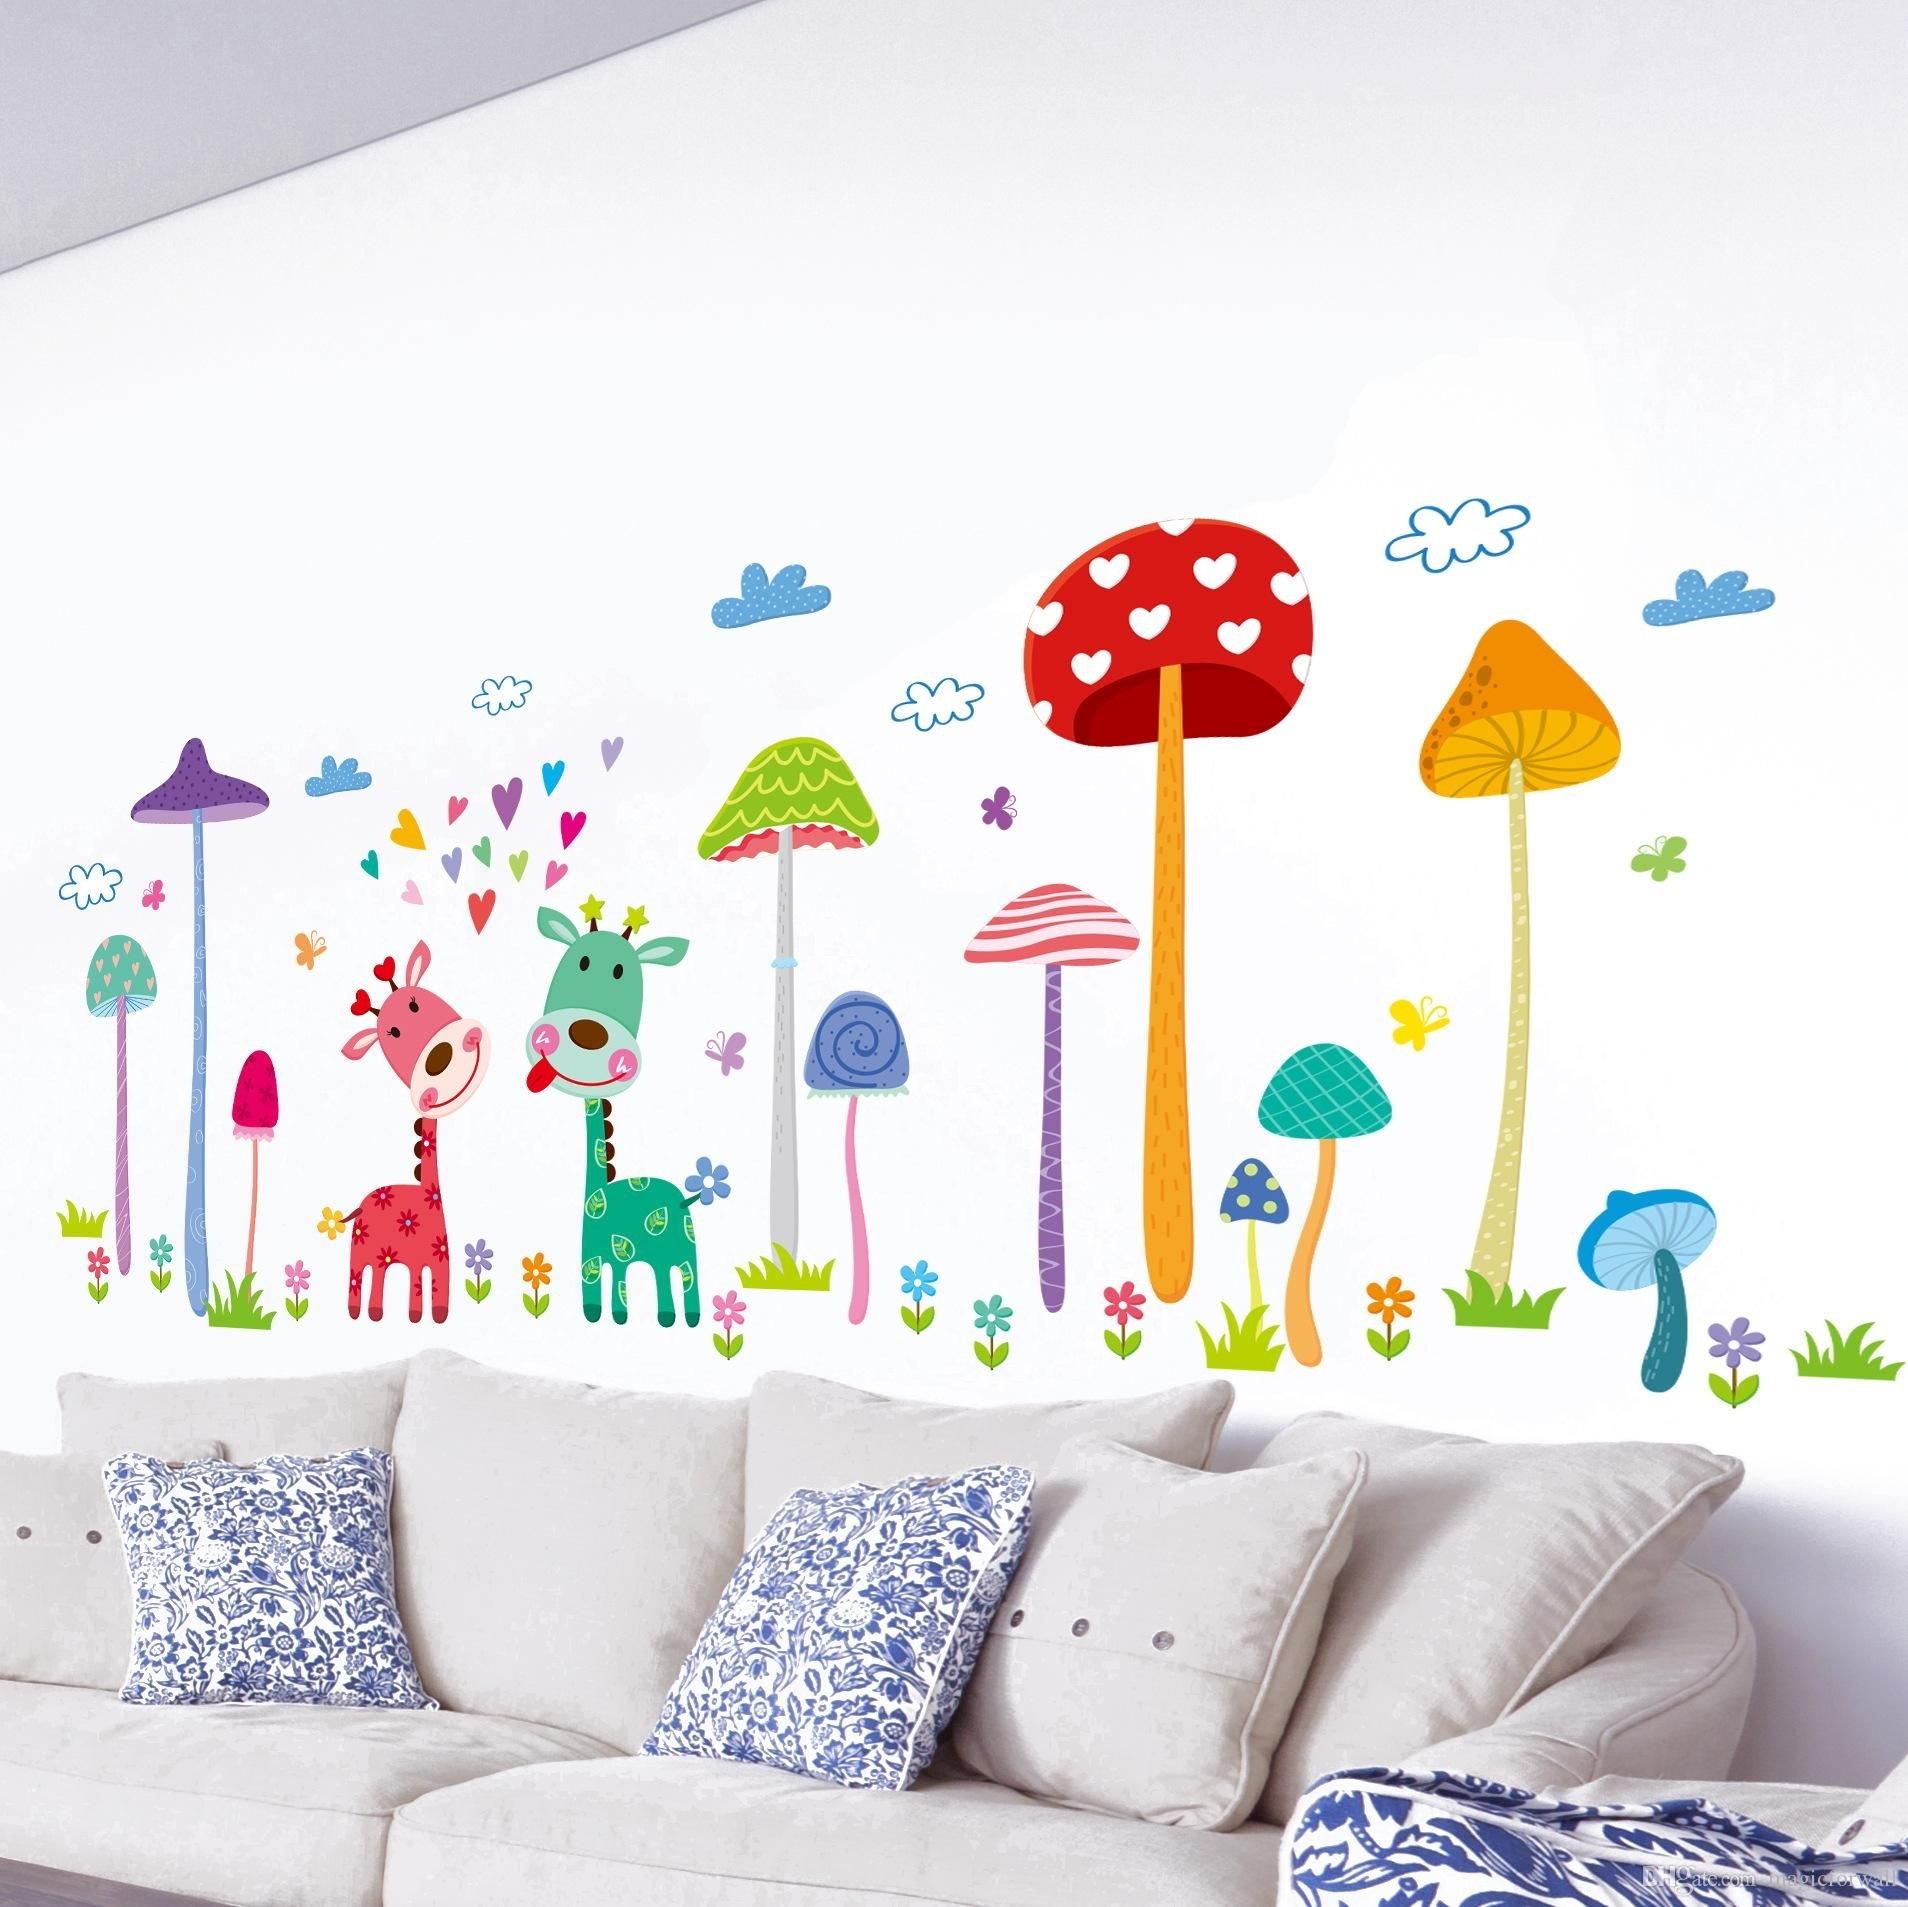 Forest Mushroom Deer Animals Home Wall Art Mural Decor Kids Babies with regard to Most Up-to-Date Home Wall Art